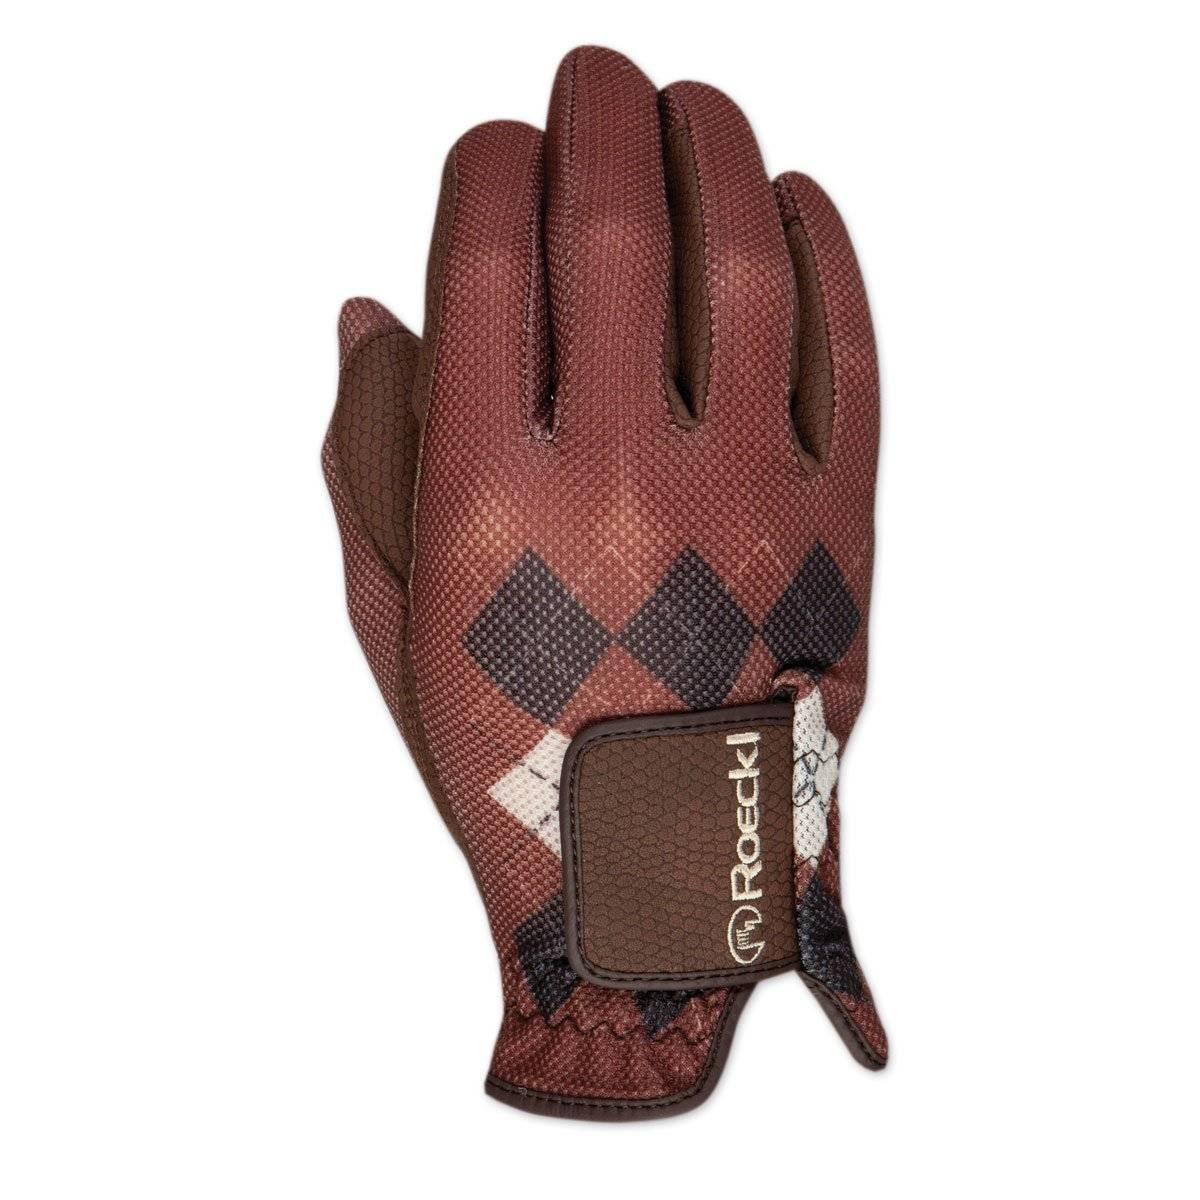 Roeckl Summer Argyle Chester Gloves